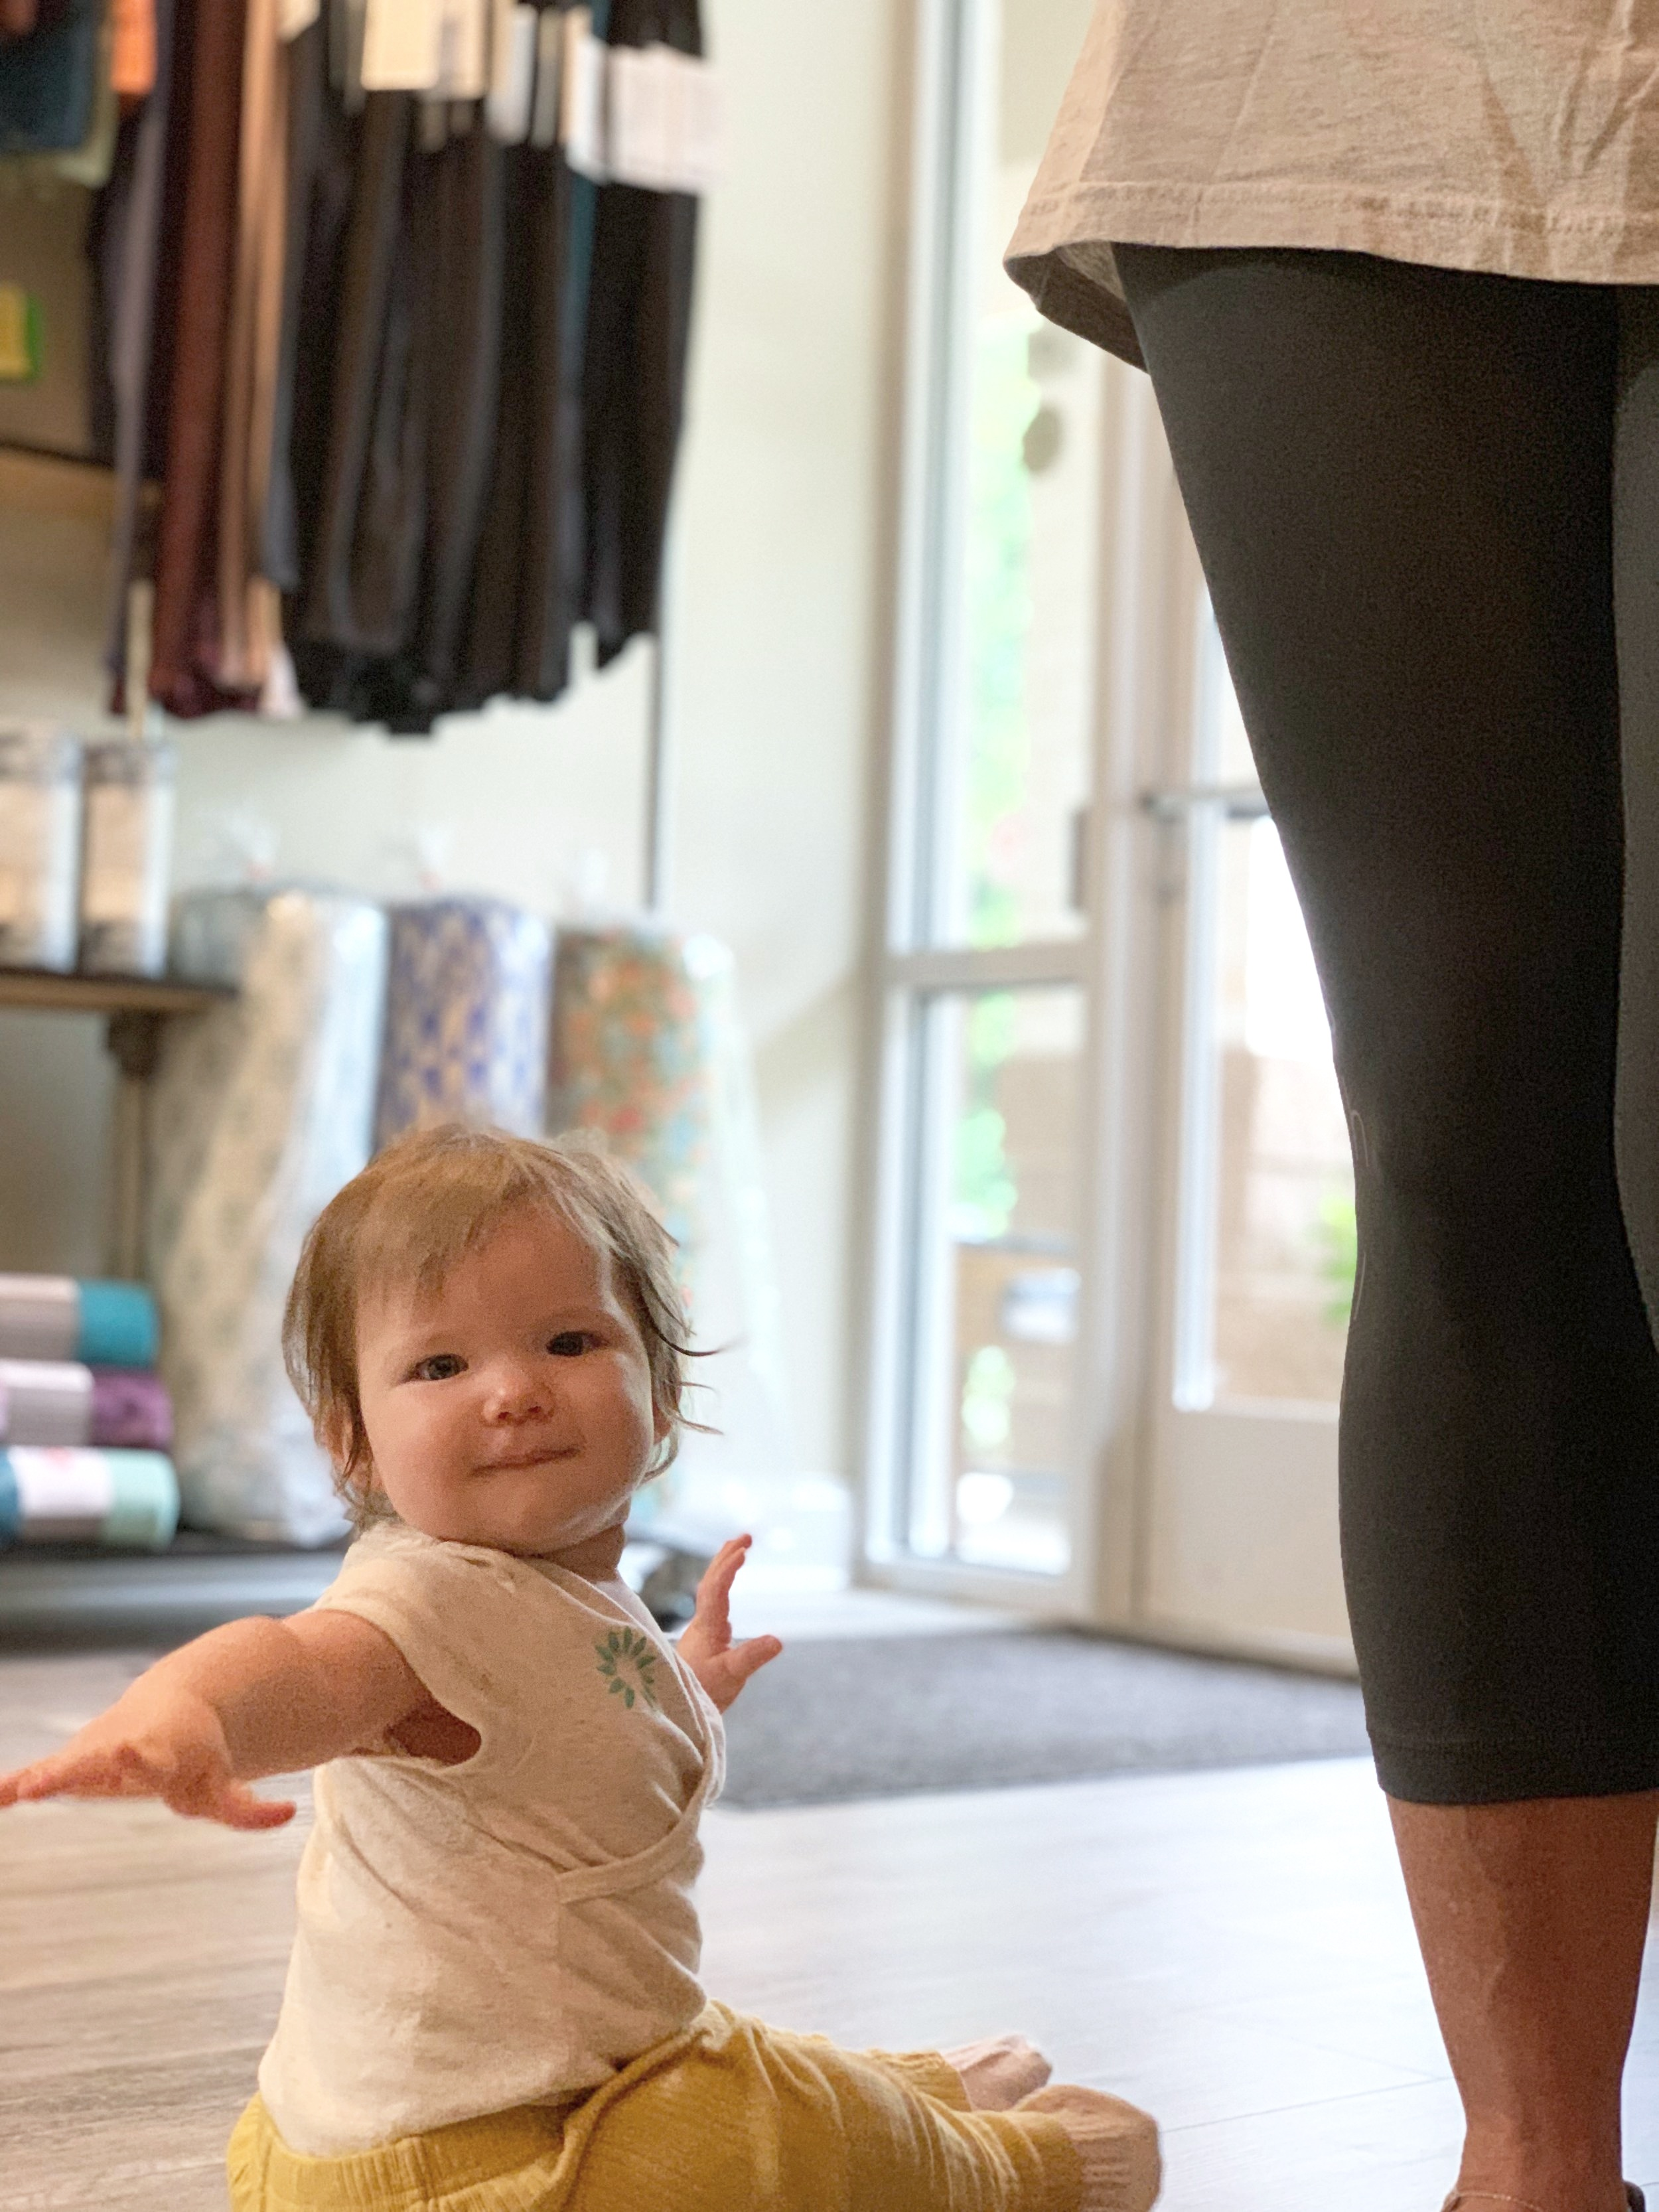 iShine owner, Genevieve Boulanger's daughter, Stella, at 8 months